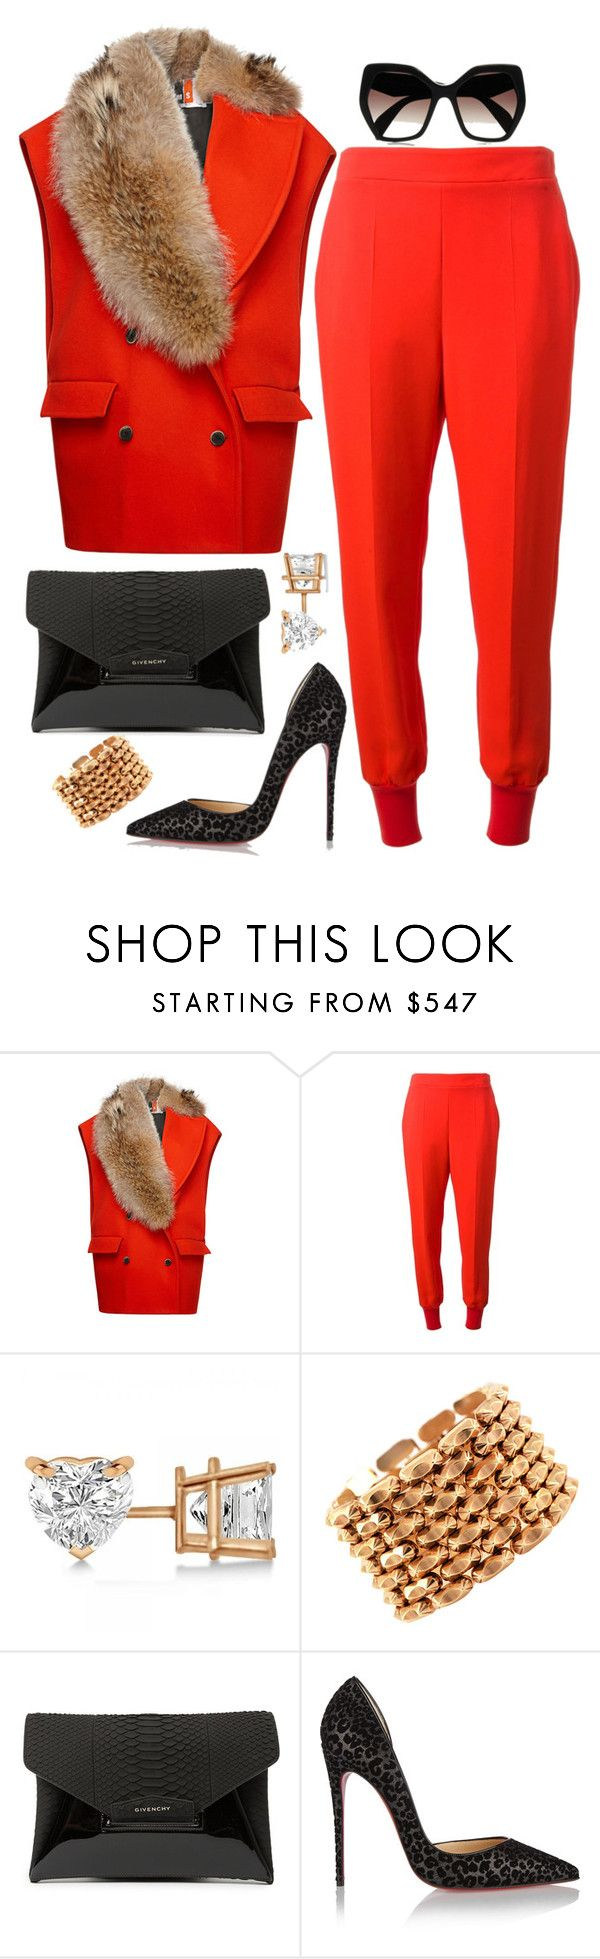 """Red Hot"" by fashionkill21 ❤ liked on Polyvore featuring MSGM, STELLA McCARTNEY, Allurez, Retrò, Givenchy, Christian Louboutin and Prada"